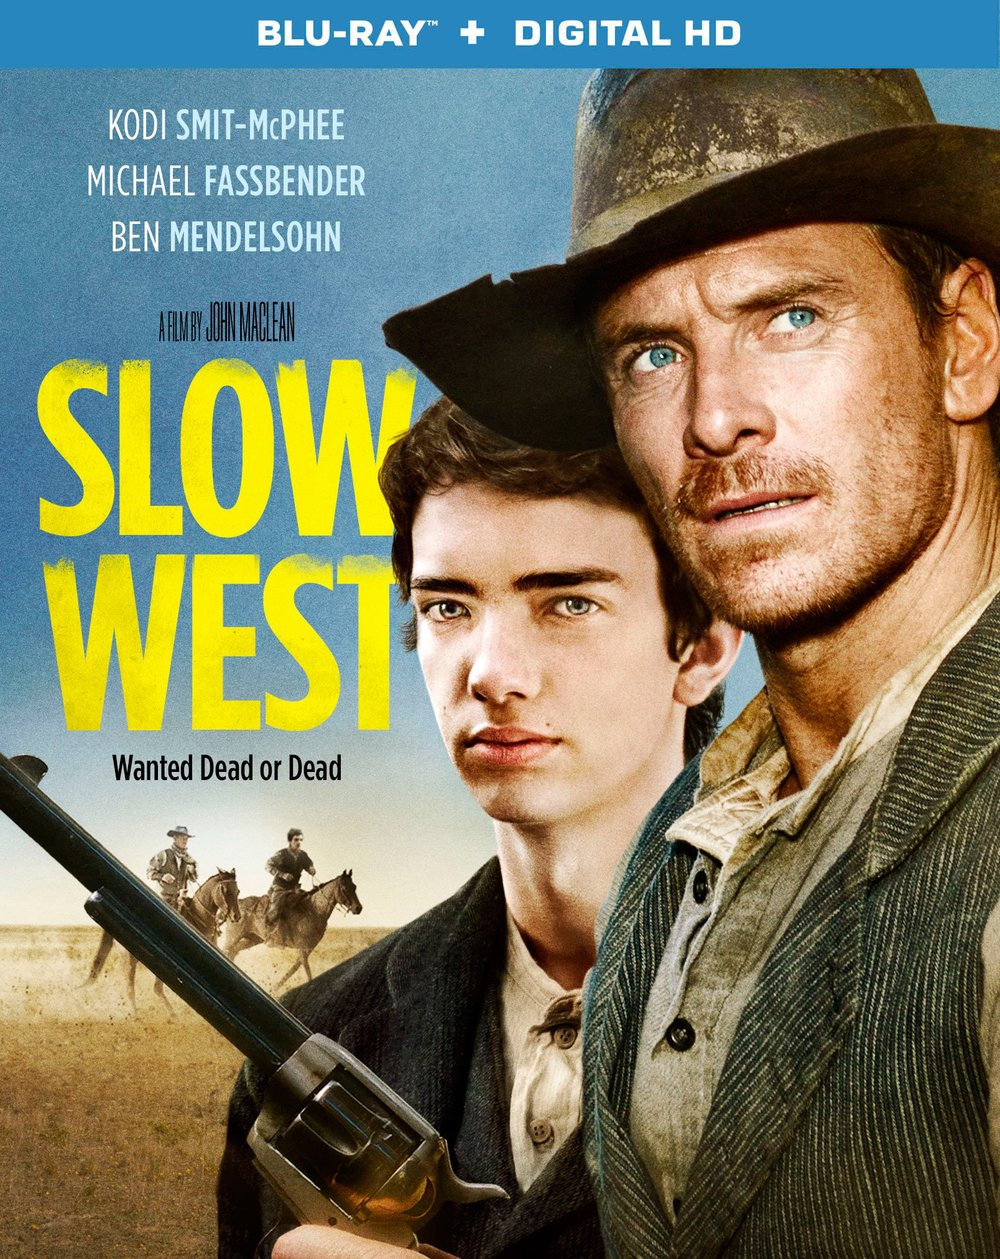 Unfortunately, the home video cover makes it looklike an 80's direct to TV western that Tom Selleck pulled out of at the last minute.